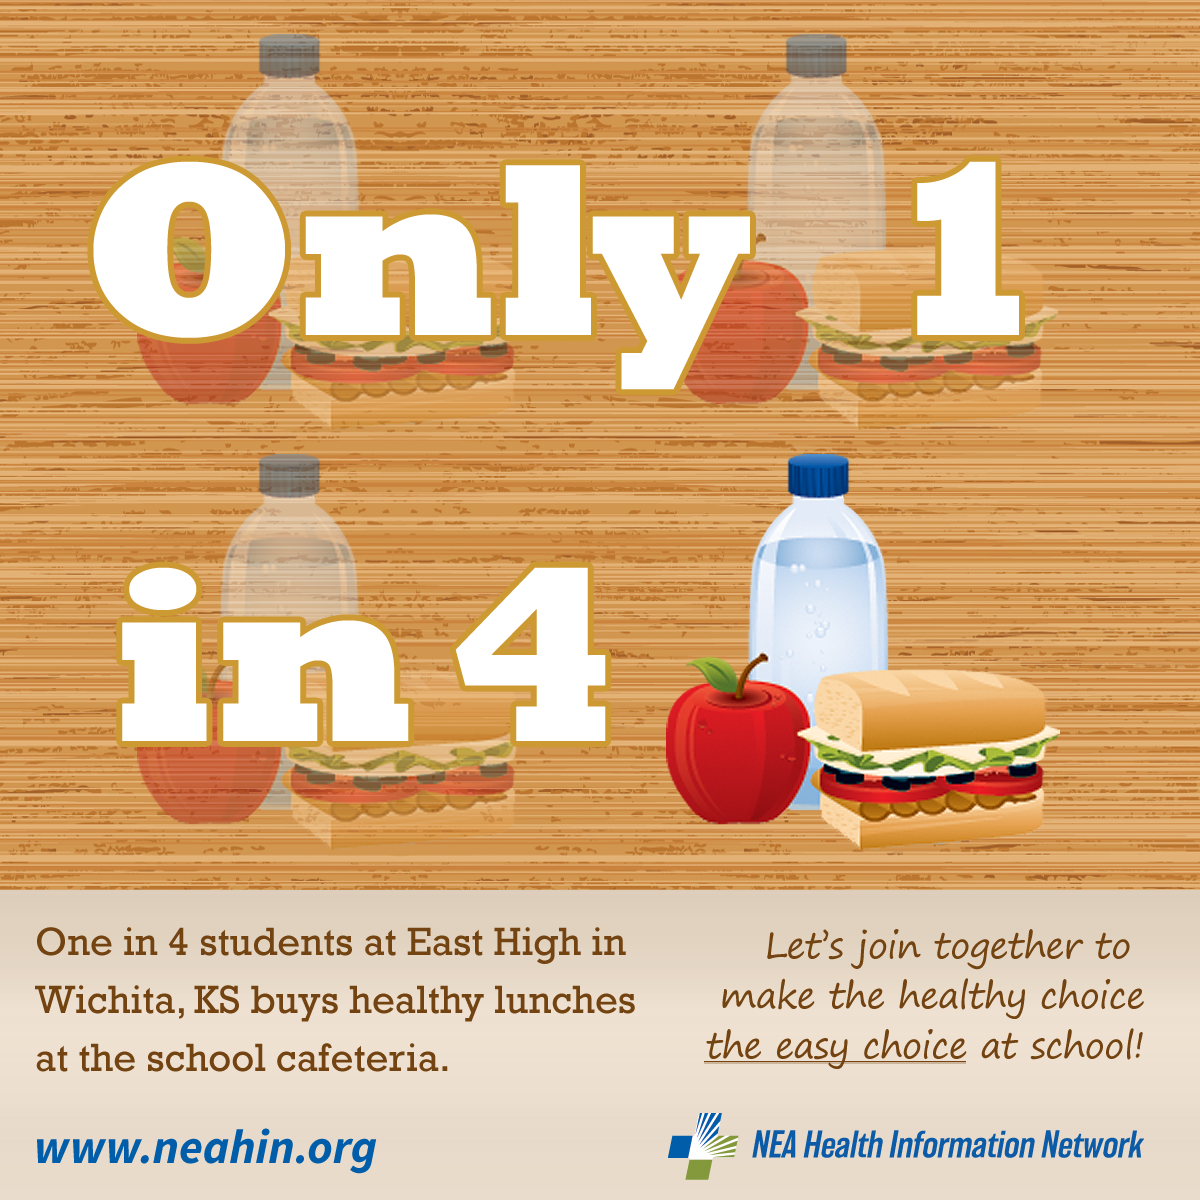 One In 4 Students At East High School In Wichita Ks Buys Healthy Lunches At The School Cafeteria School Cafeteria School Food Healthy Lunch